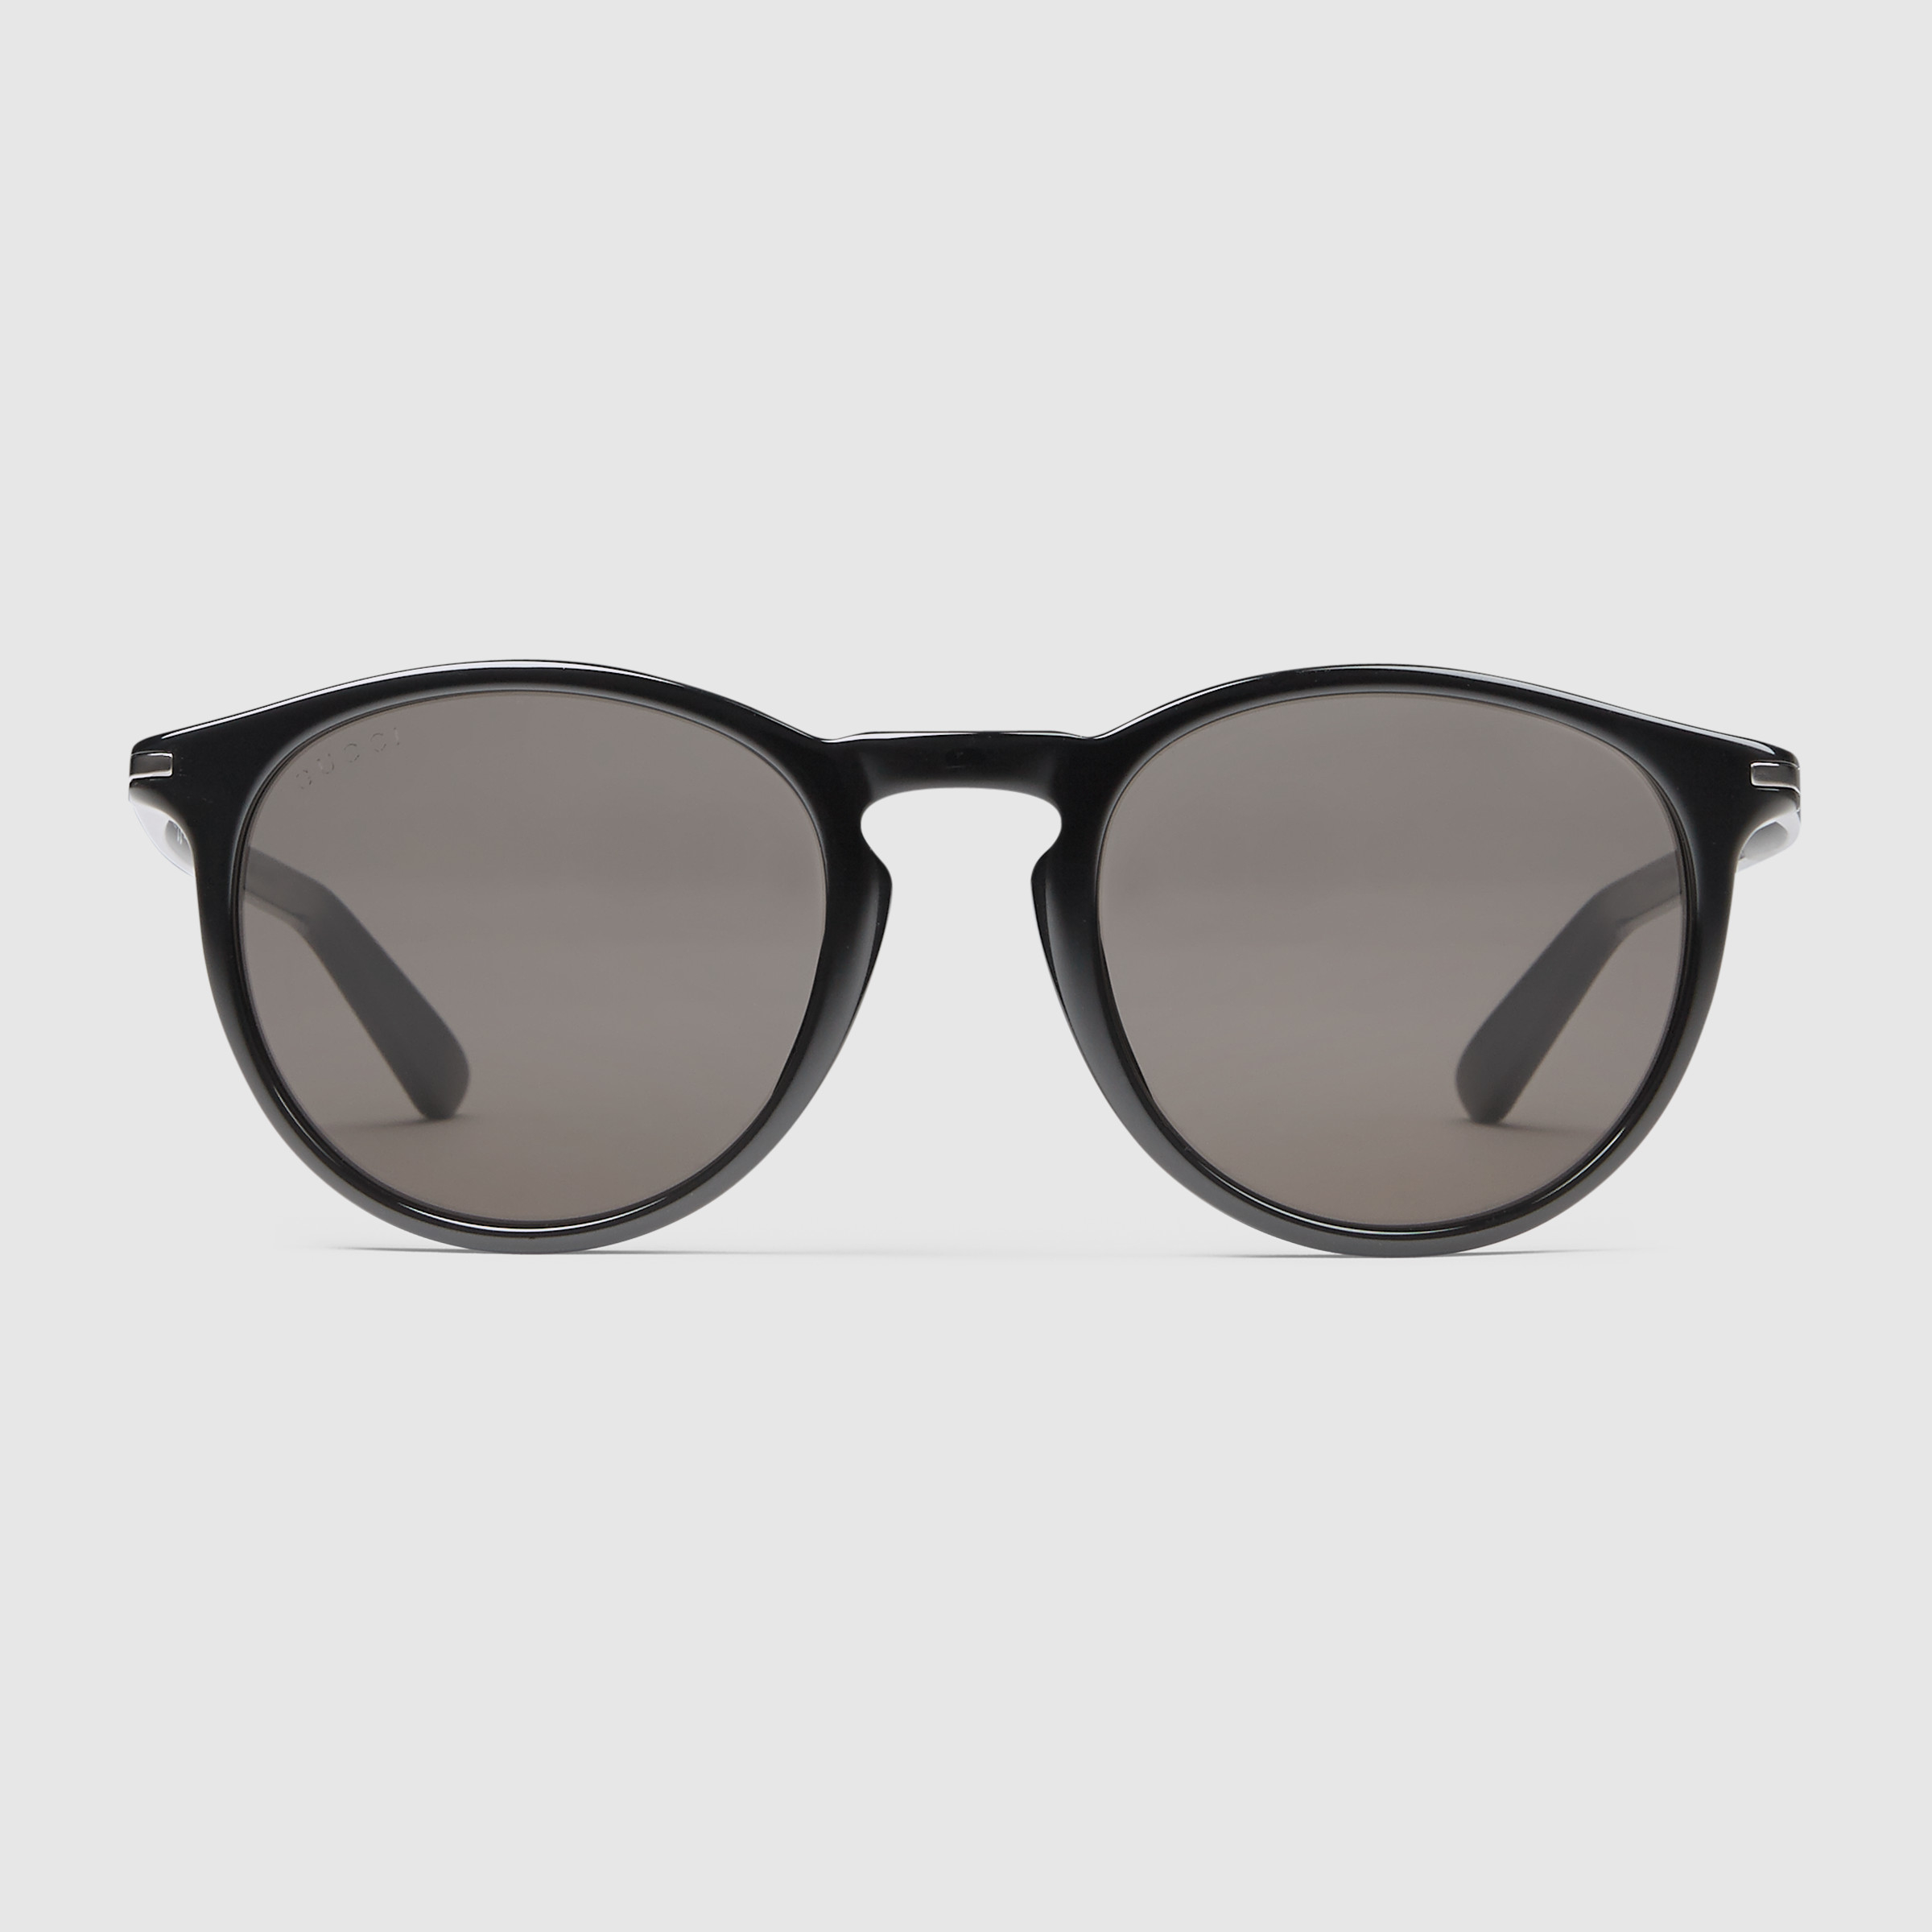 Lyst - Gucci Round-frame Acetate And Metal Sunglasses in Black for Men